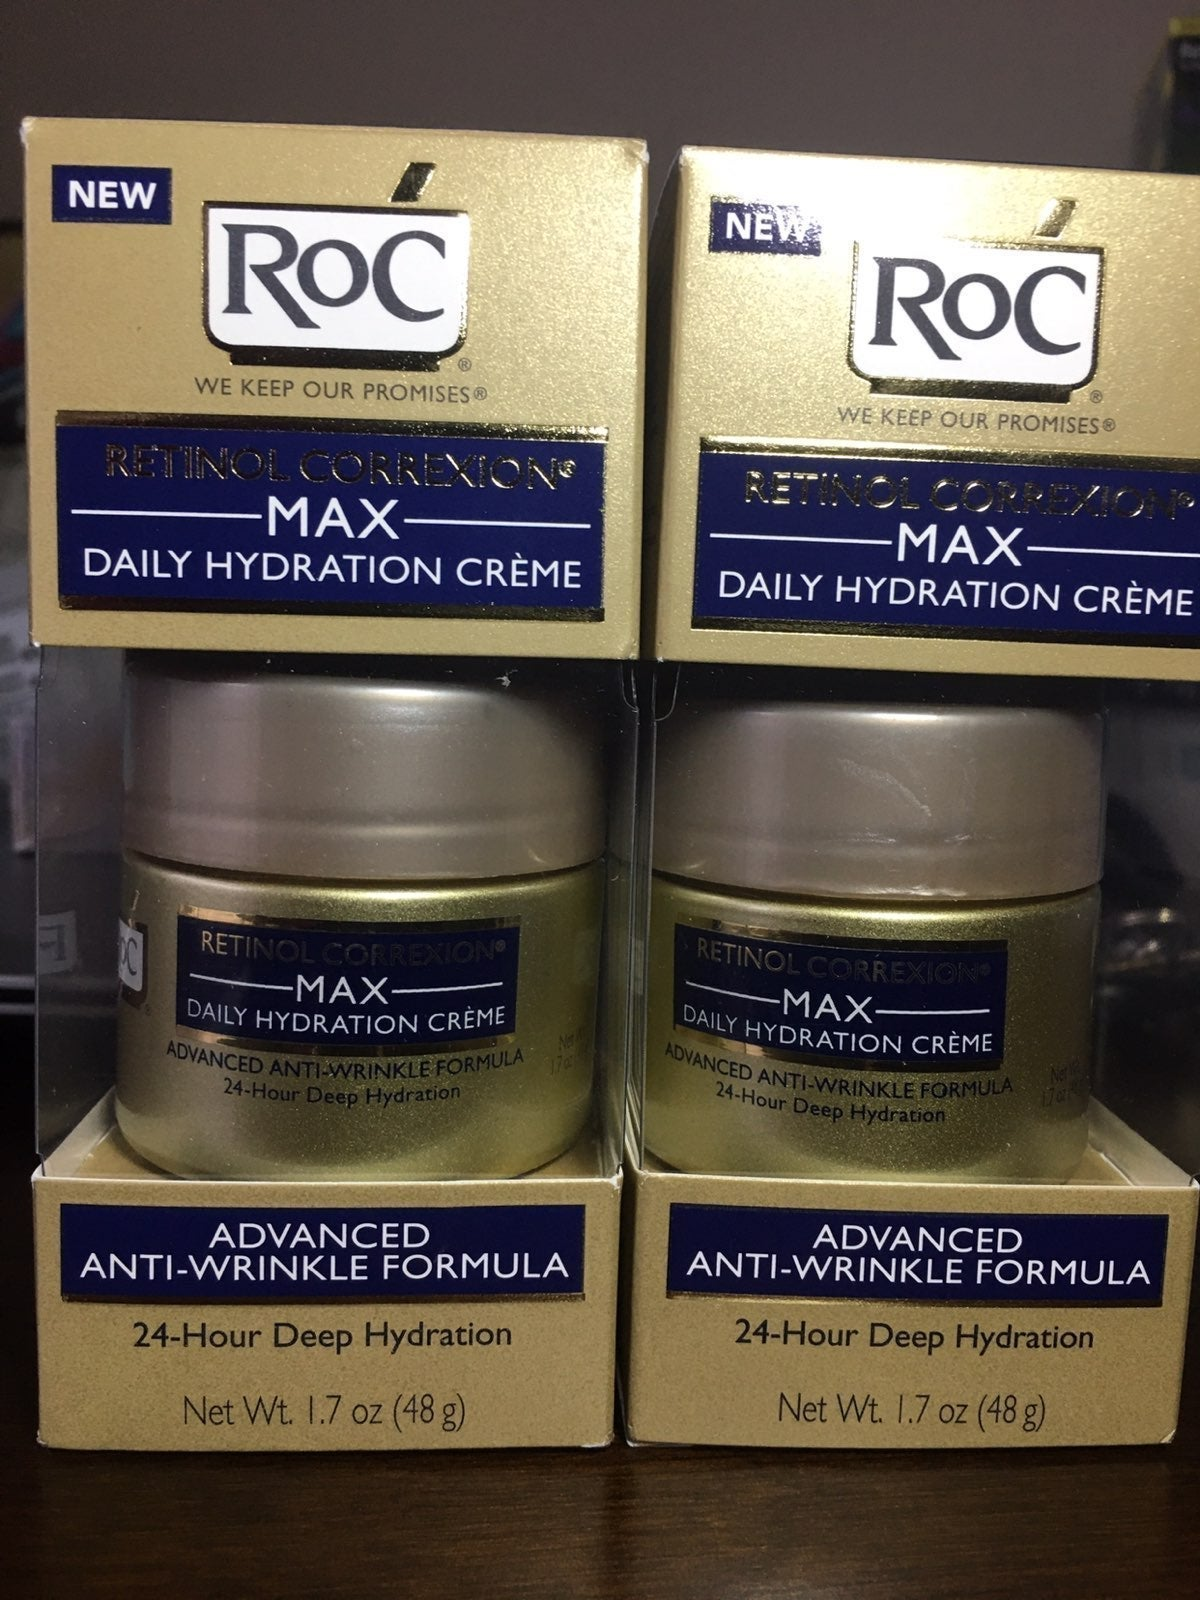 Roc max daily hydeation creme